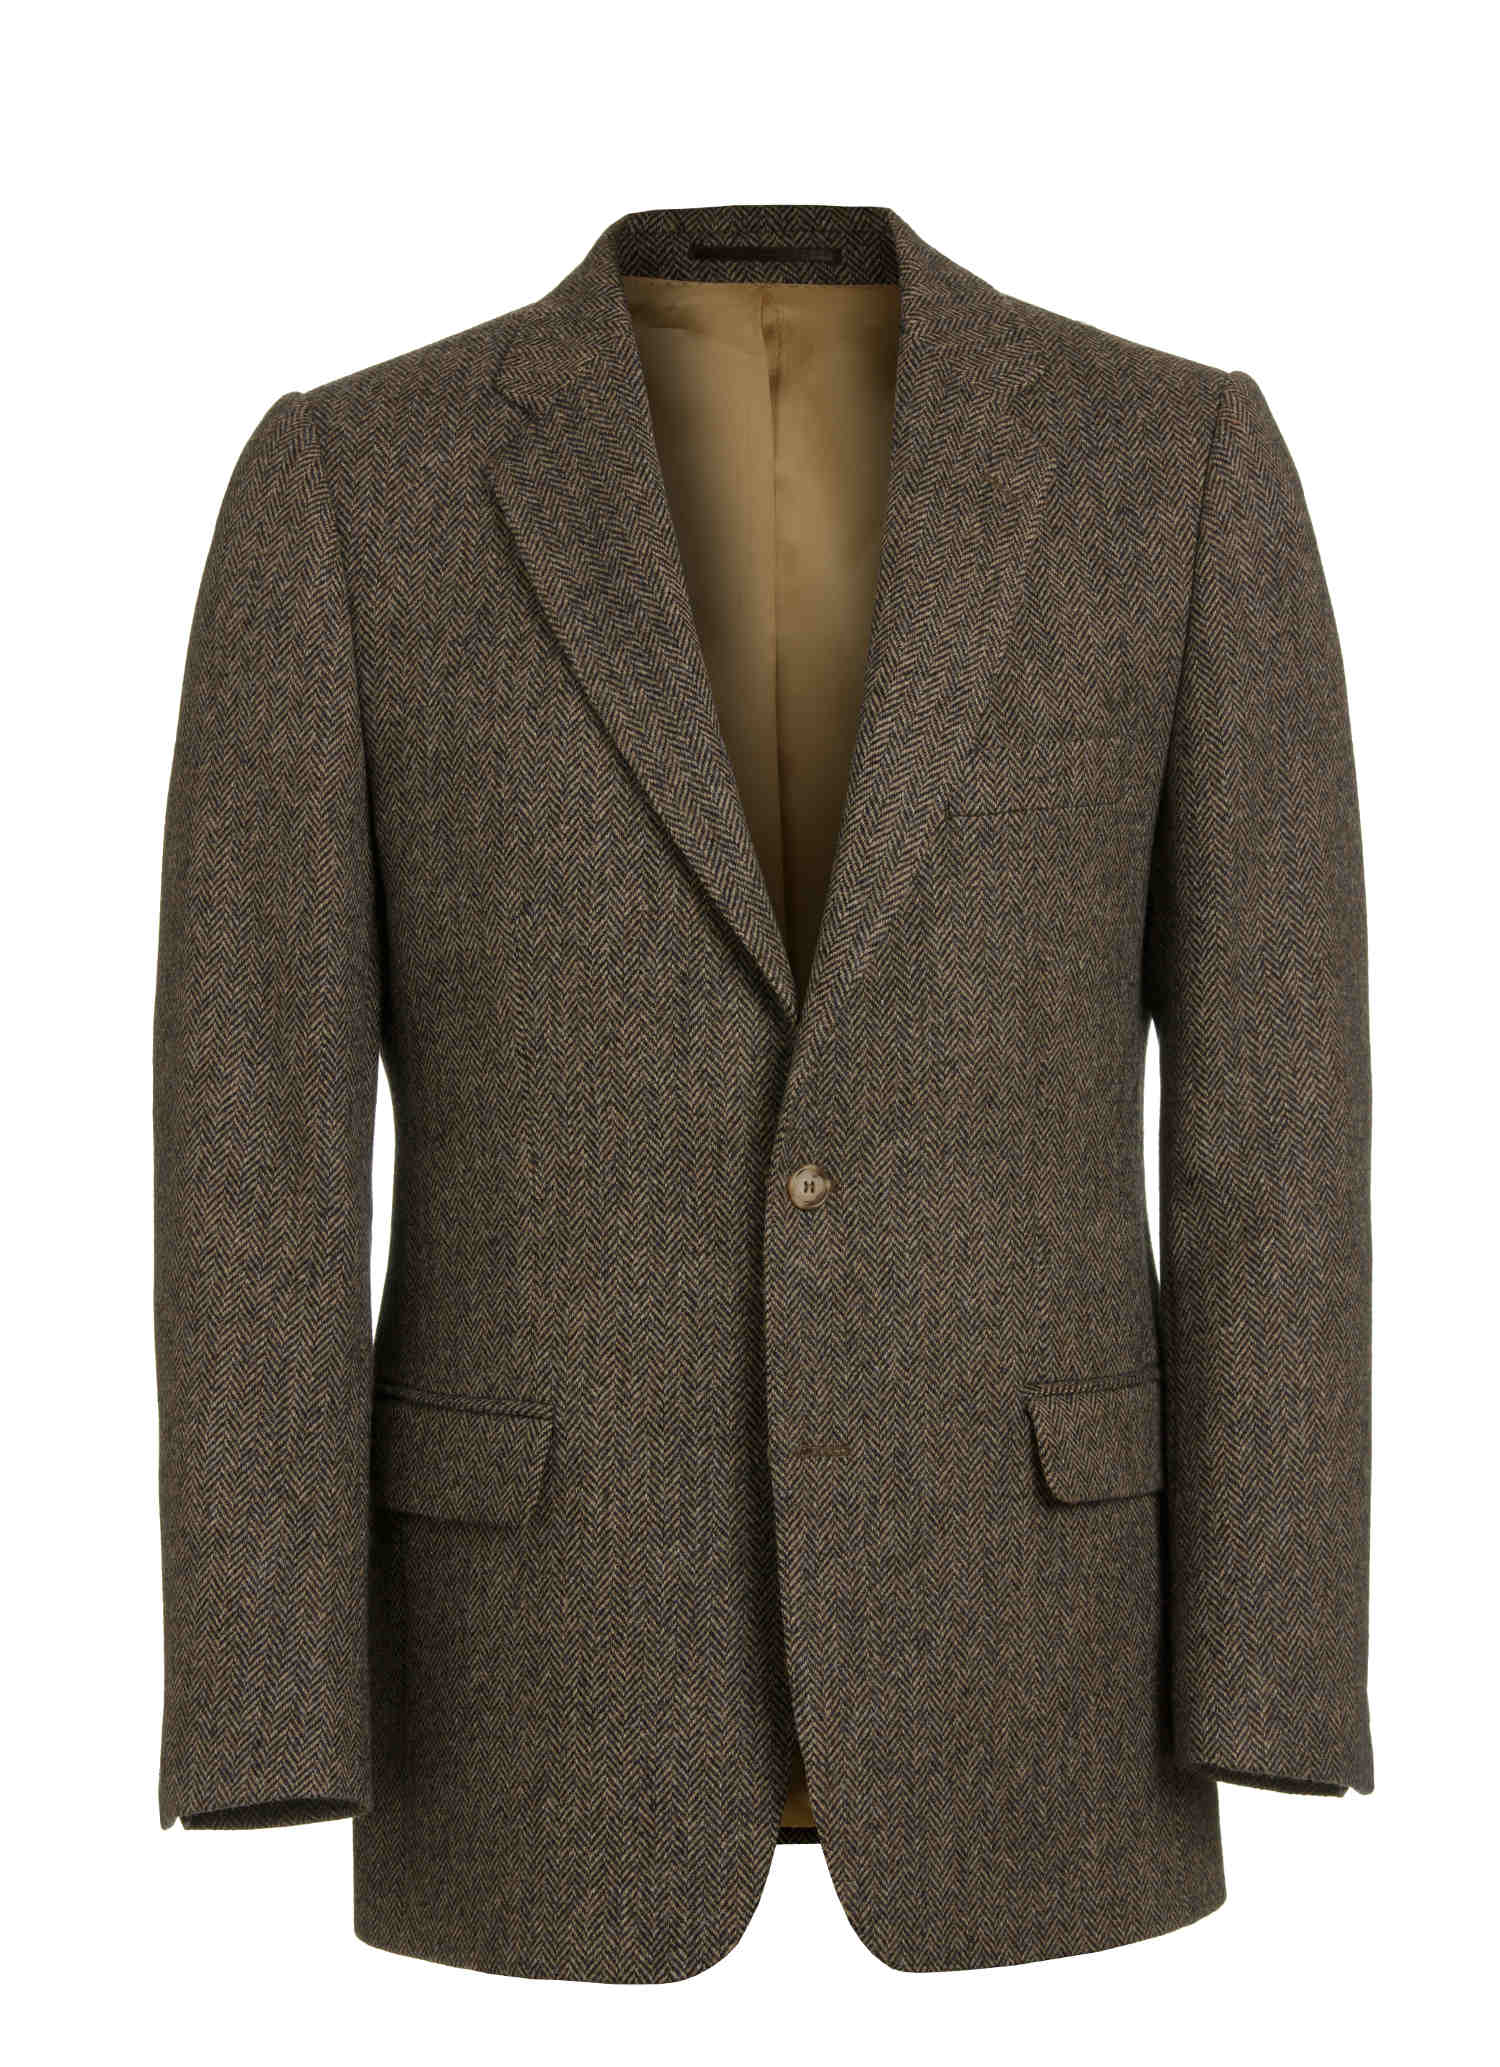 Brown Tweed with Gold lining